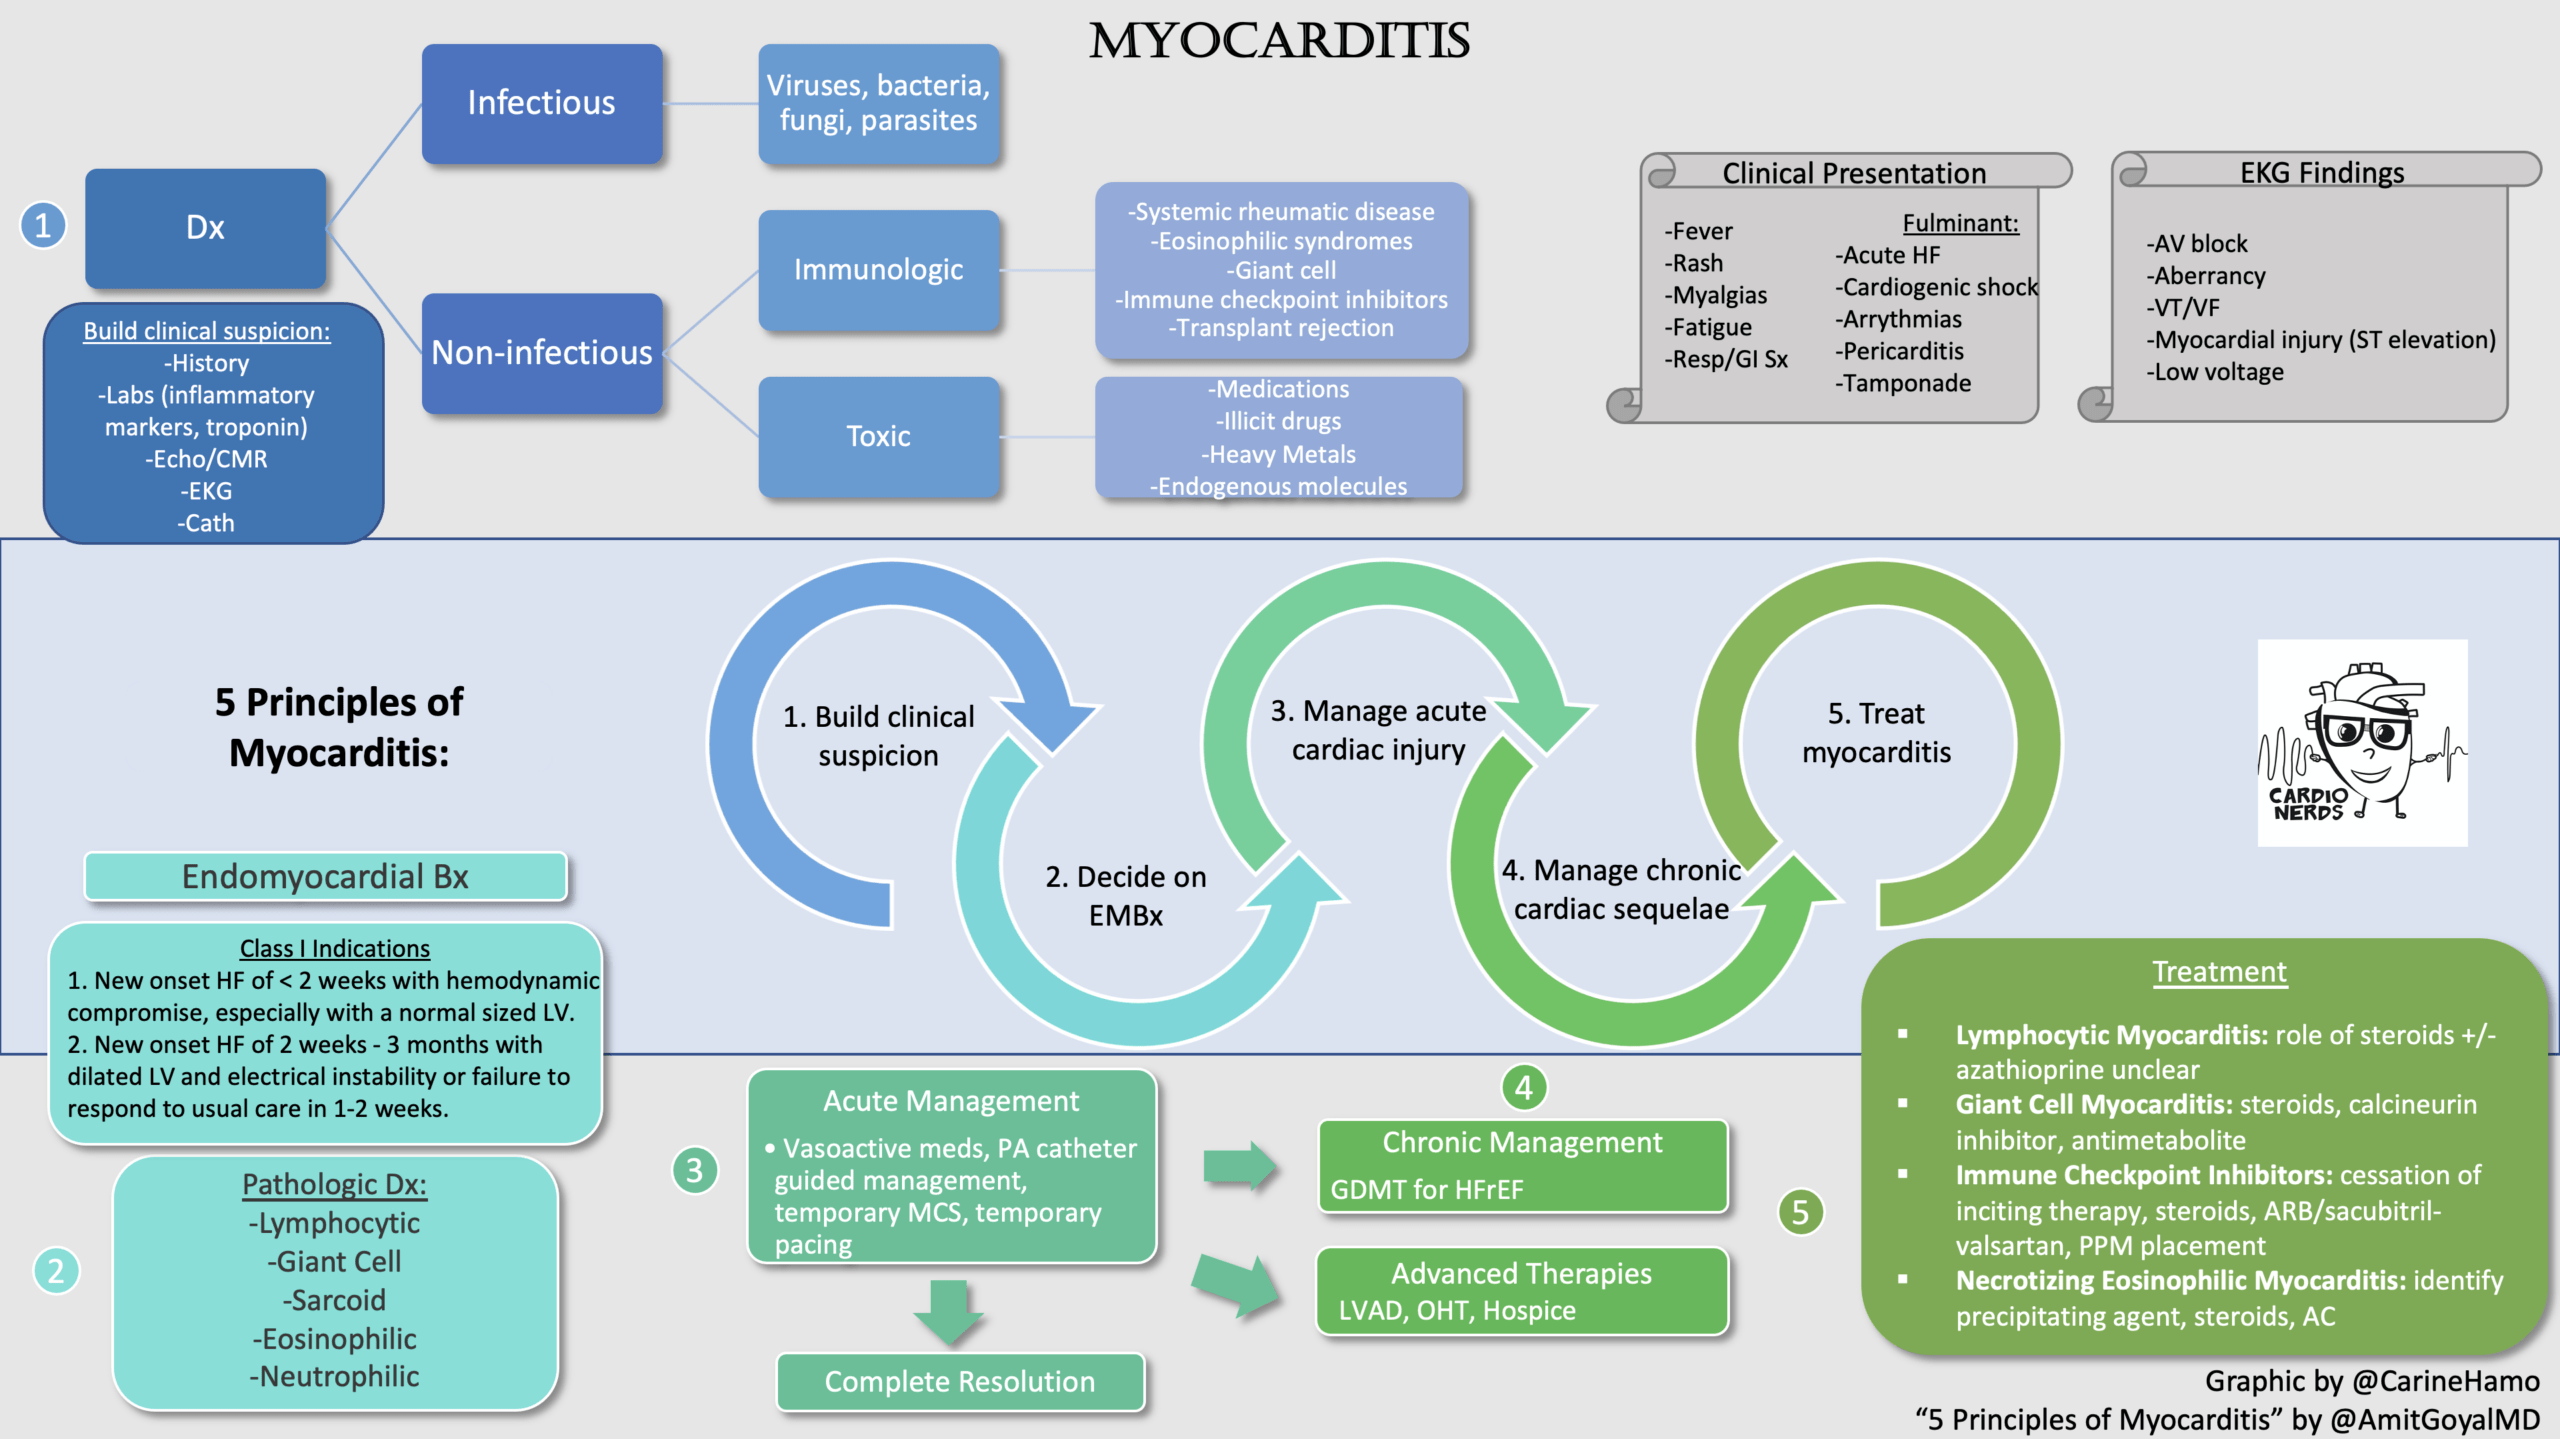 31. Fulminant Myocarditis with Cardiogenic Shock: Case Discussion